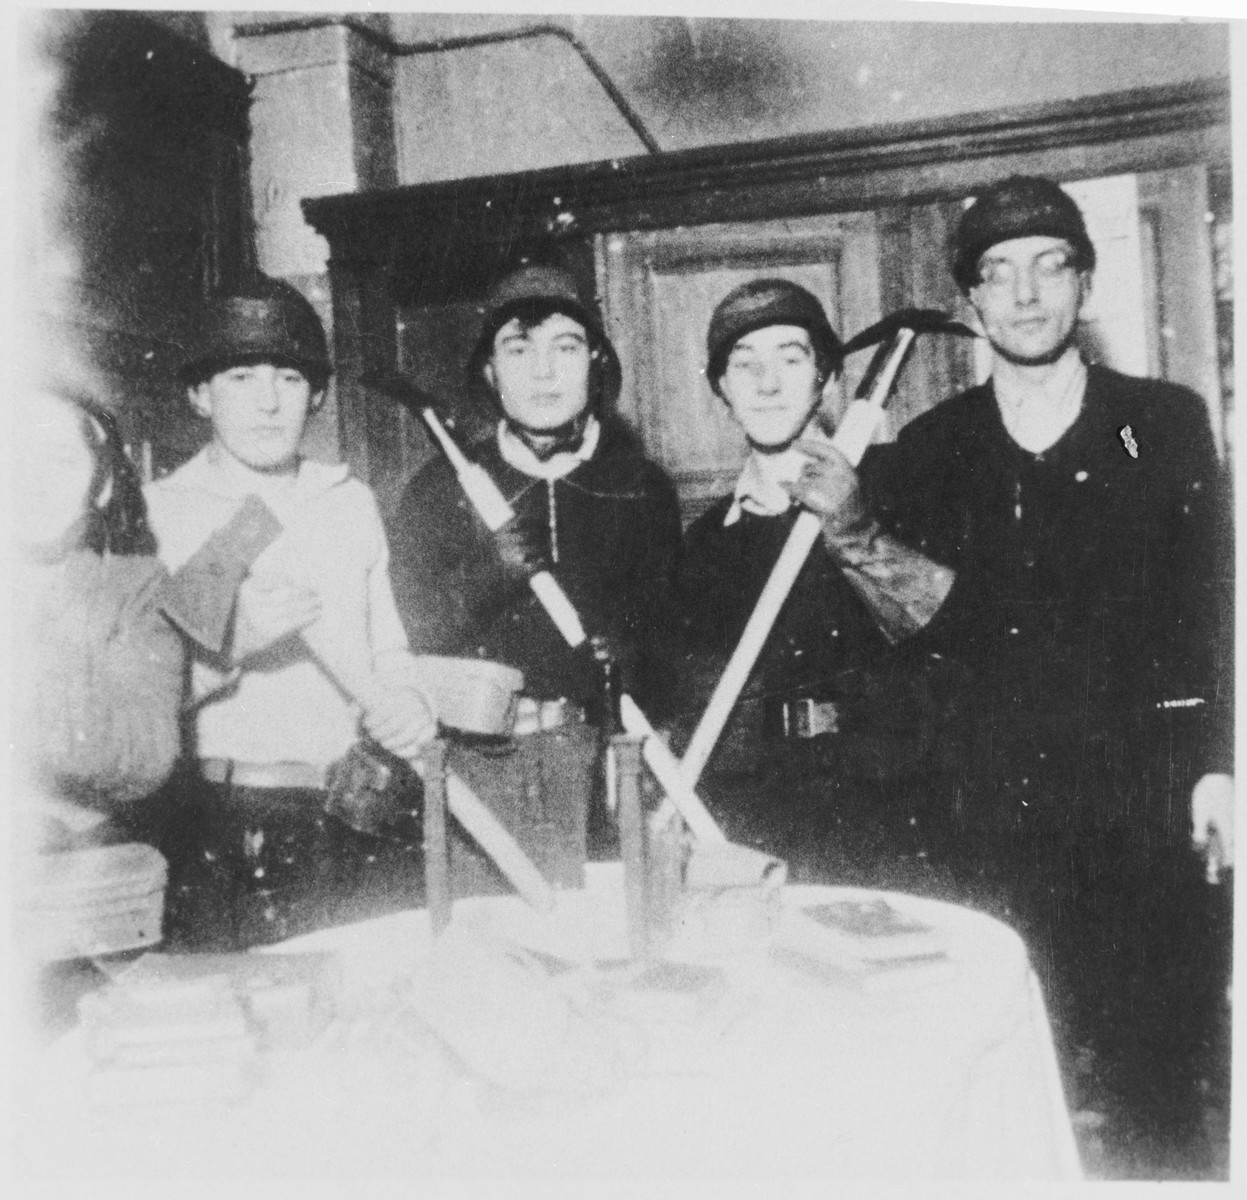 Students and teachers at the Youth Aliyah school in Berlin pose with helmets and tools during a mandatory air raid patrol shift.    Pictured on the far right is the director of the school, Jizchak Schwersenz.